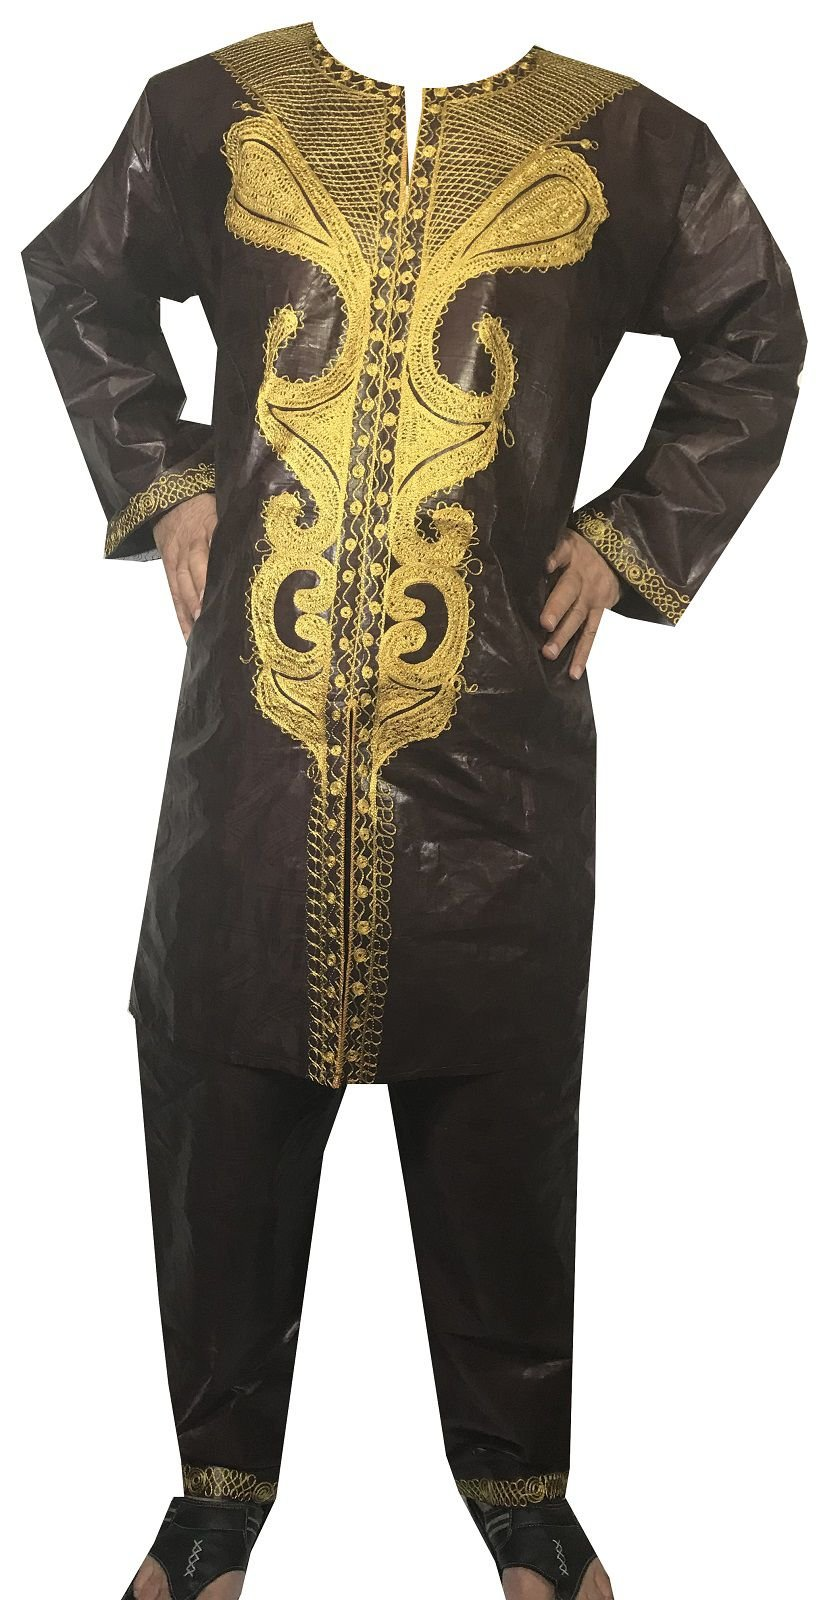 DecoraApparel African Men Pant Suit Brocade Embroidered 3PCs Suits Bright Colors by Decoraapparel